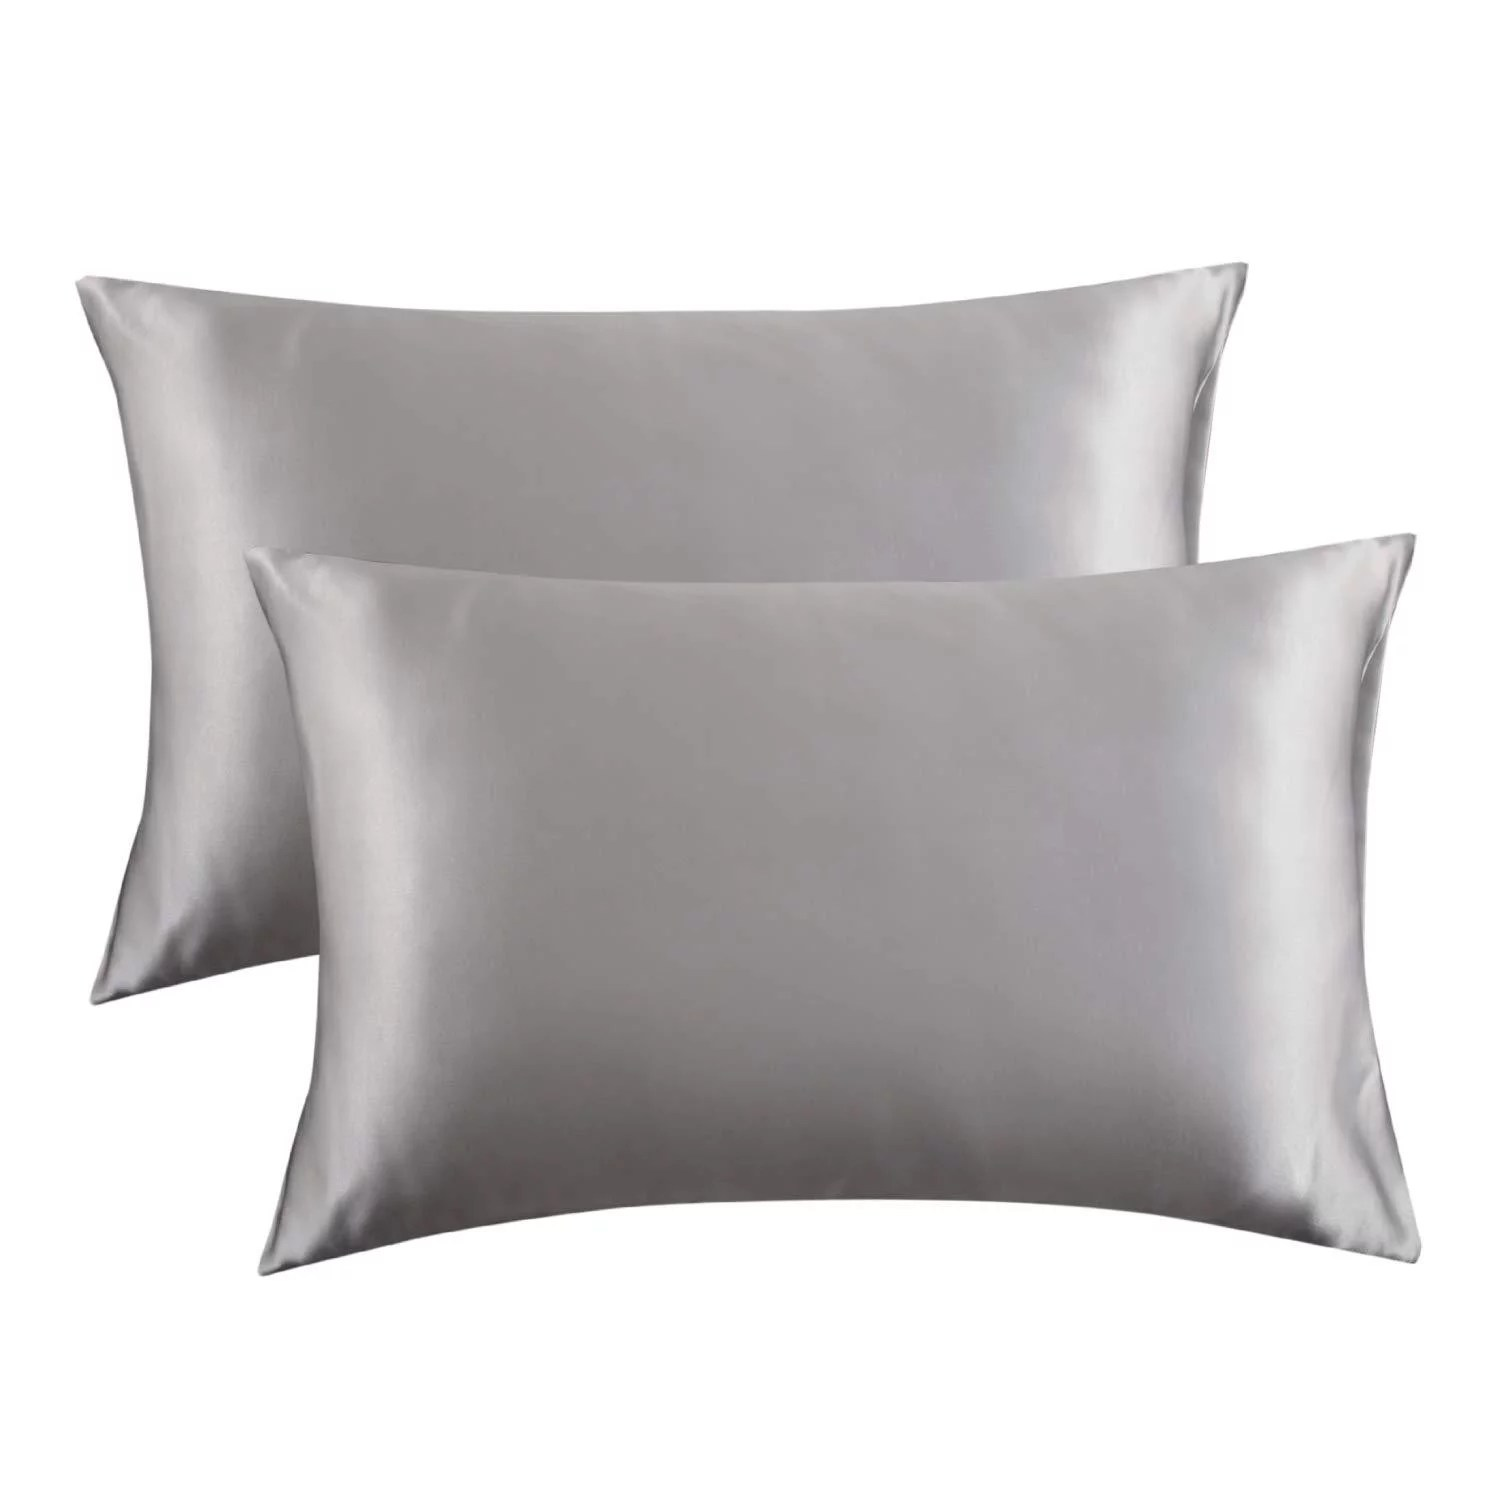 bedsure satin pillowcase for hair and skin 2 pack standard size 20x26 inches pillow cases satin pillow covers with envelope closure silver